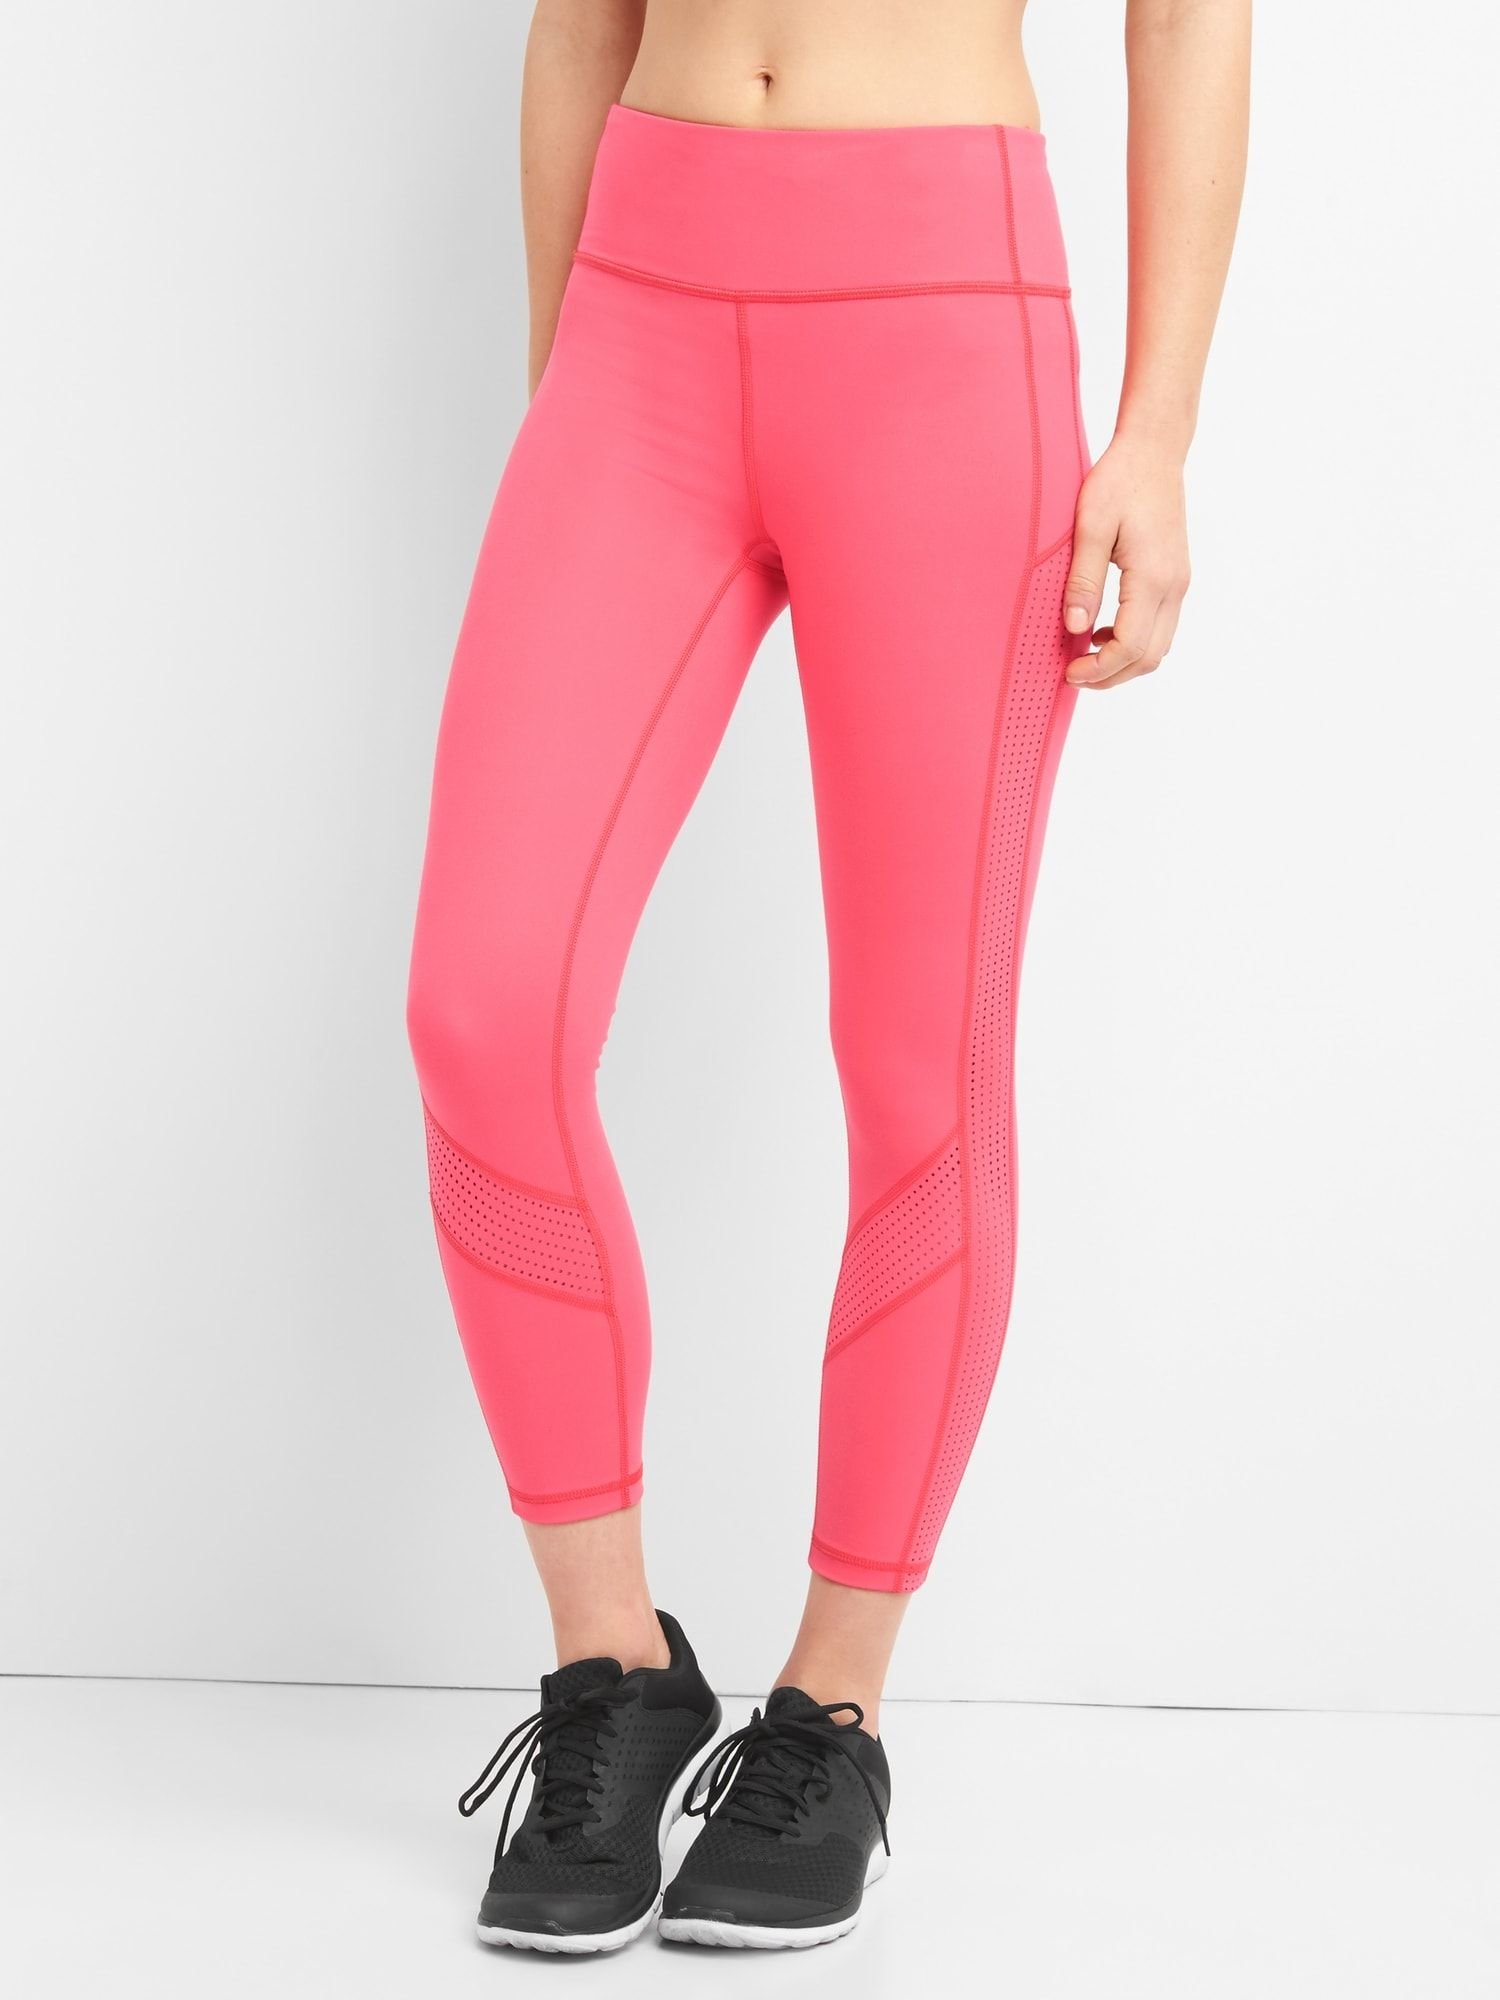 ac47347e3857e GFast Blackout Perforated 7/8 Leggings | Sweat | Blackout panels ...